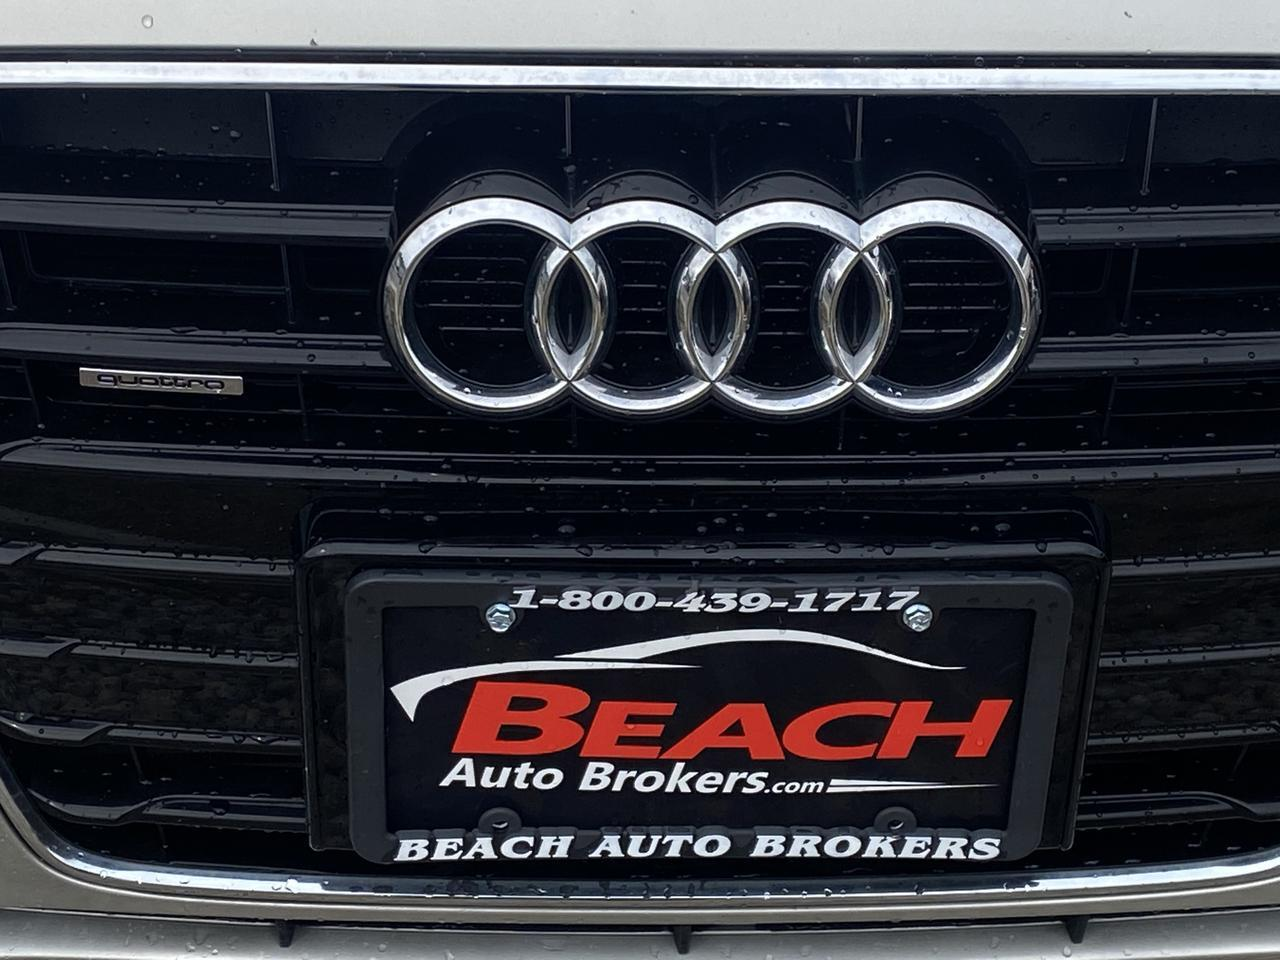 2014 AUDI A5 QUATTRO PREMIUM +, WARRANTY, LEATHER, NAV, HEATED/COOLED SEATS, SUNROOF, BACKUP CAM, CLEAN CARFAX! Norfolk VA